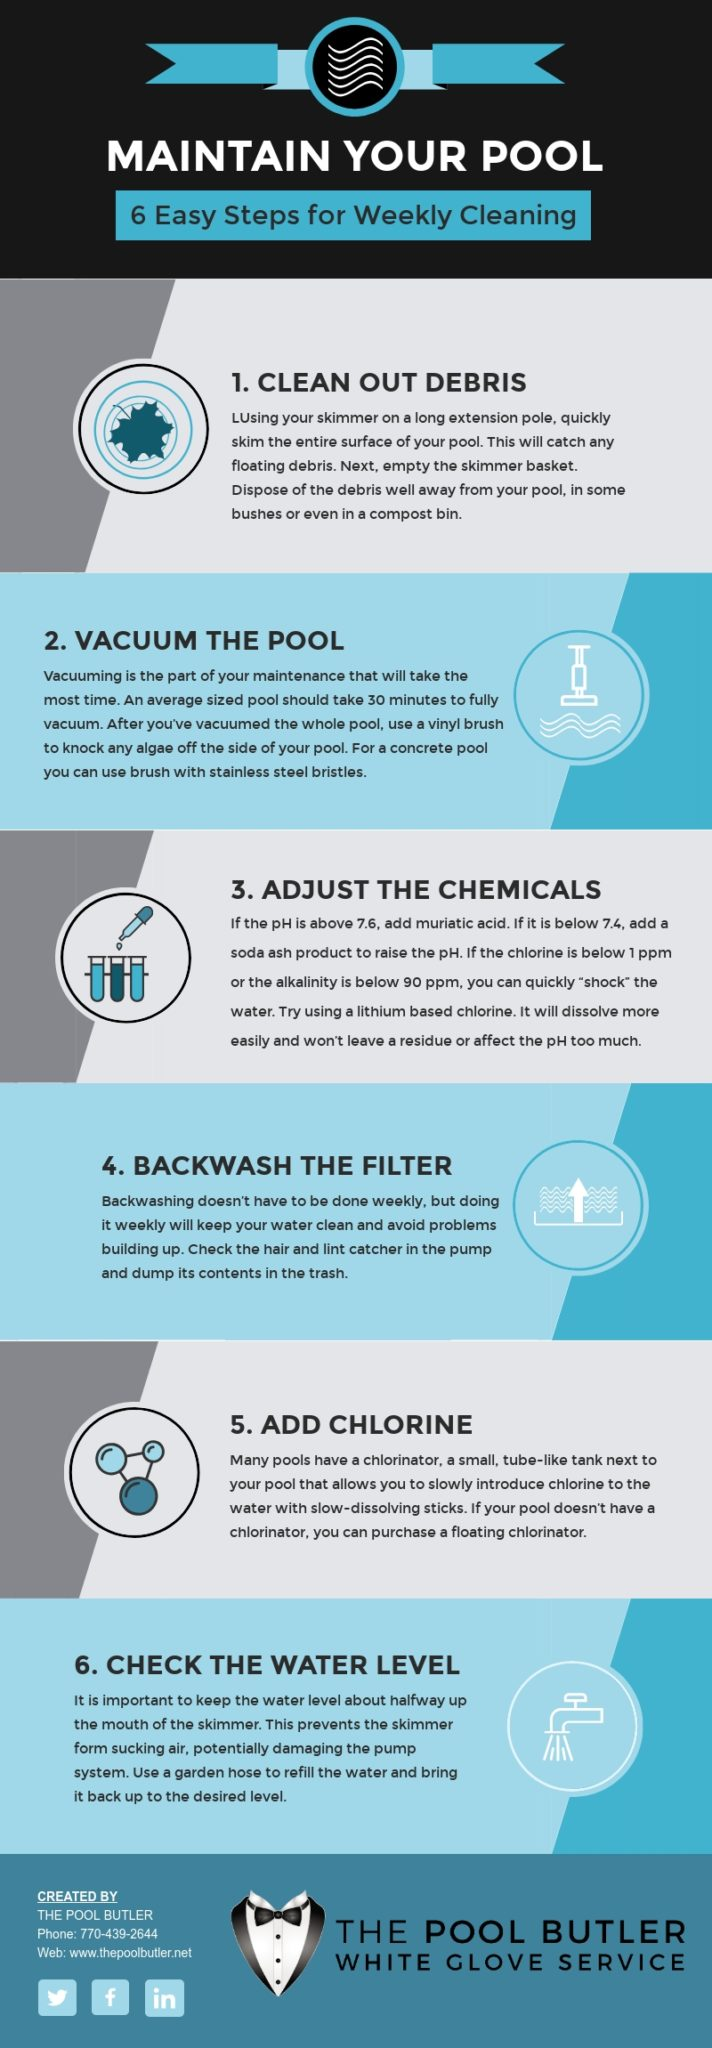 How to Maintain Your Pool Quickly and Easily [infographic]